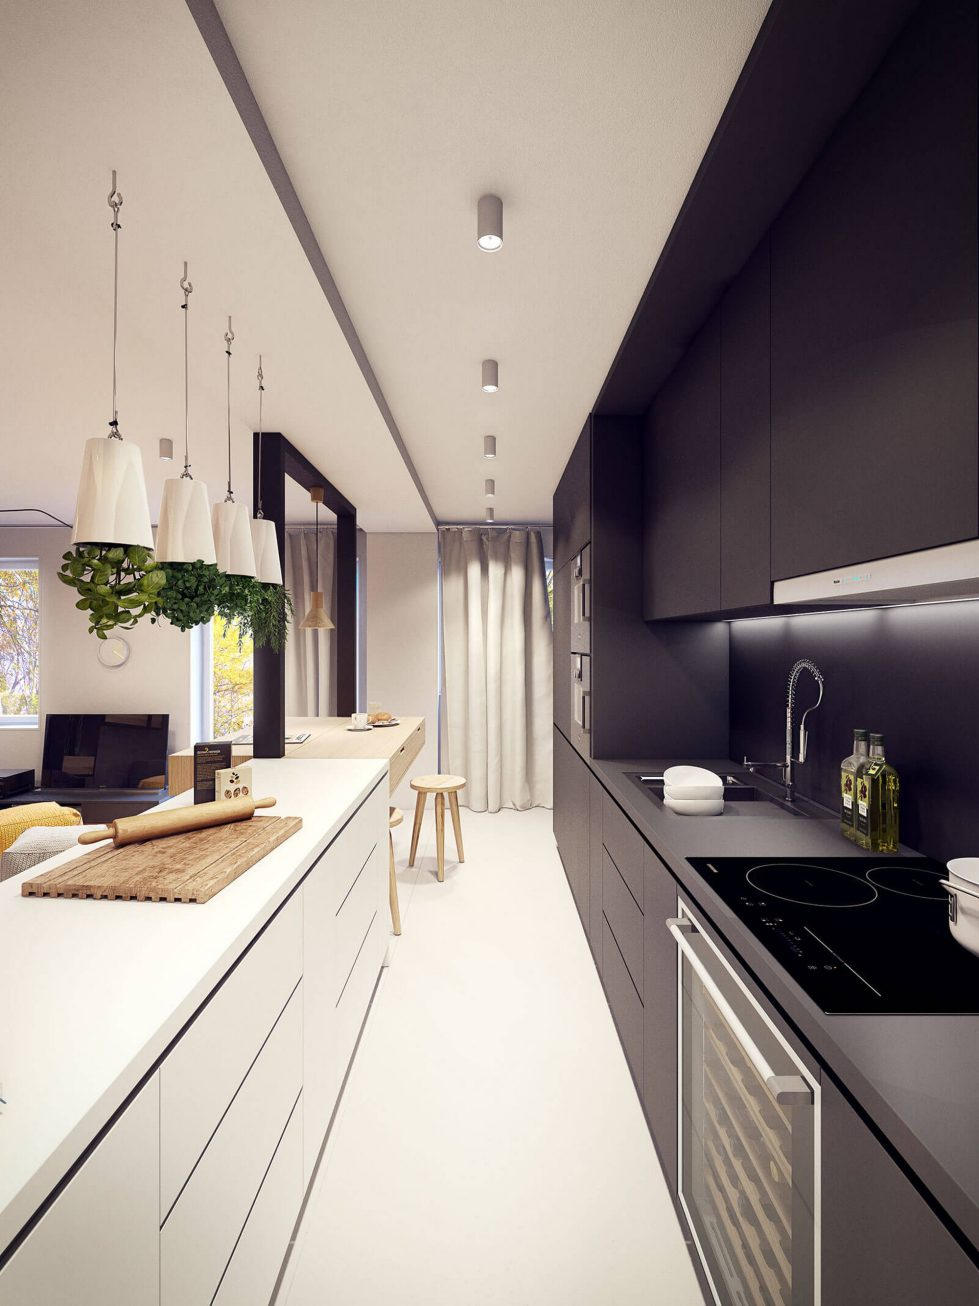 Designing project of the stylish apartments in Lodz 13